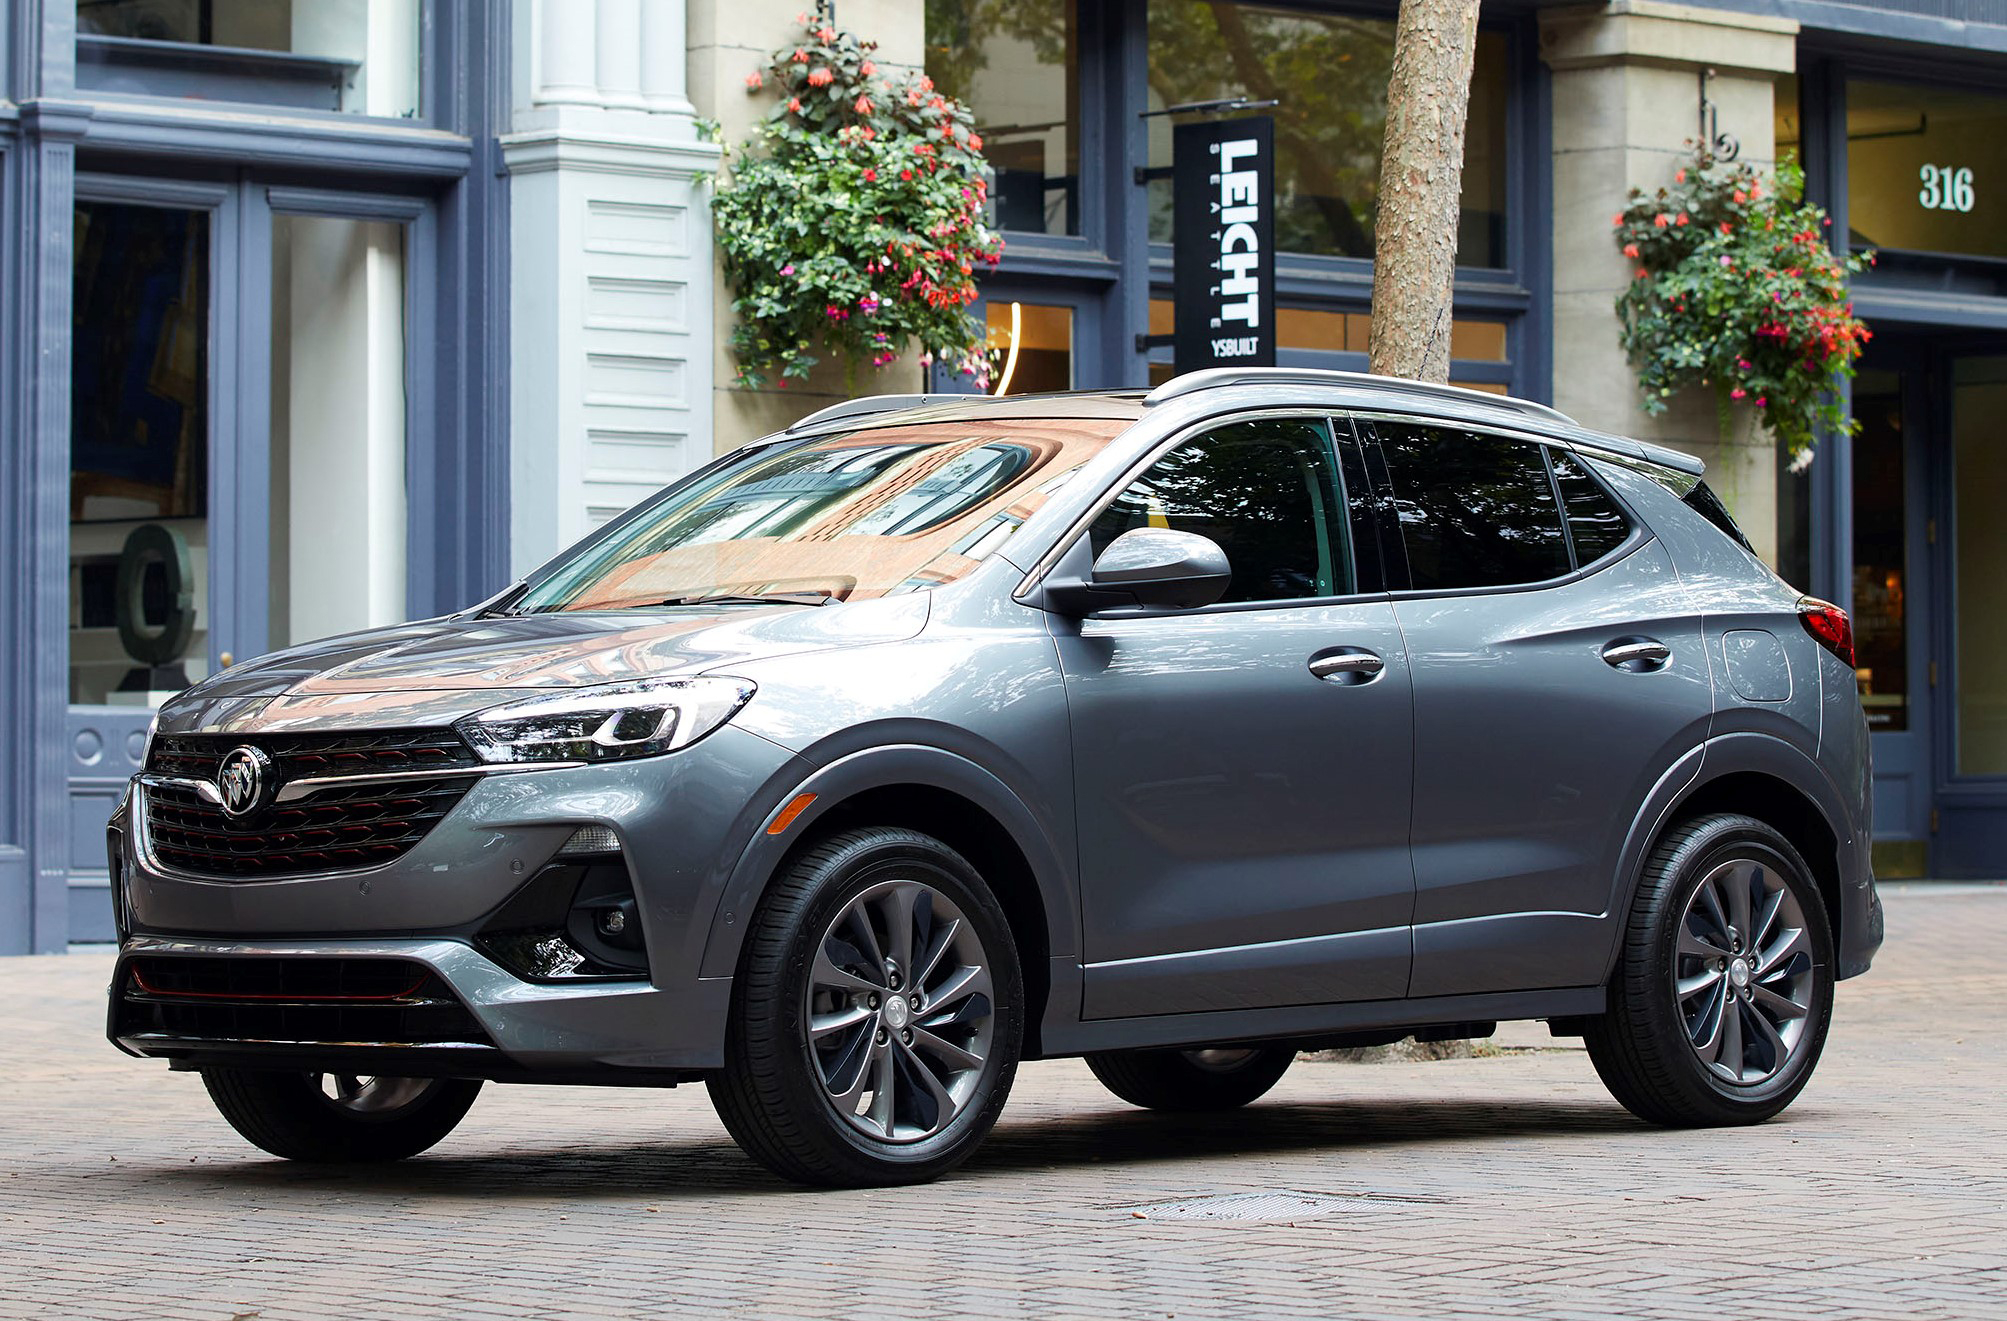 Buick Encore Gx Discount 0 Percent Apr, Cash March 2020 | Gm New 2022 Buick Encore Gx Incentives, Inventory, Lease